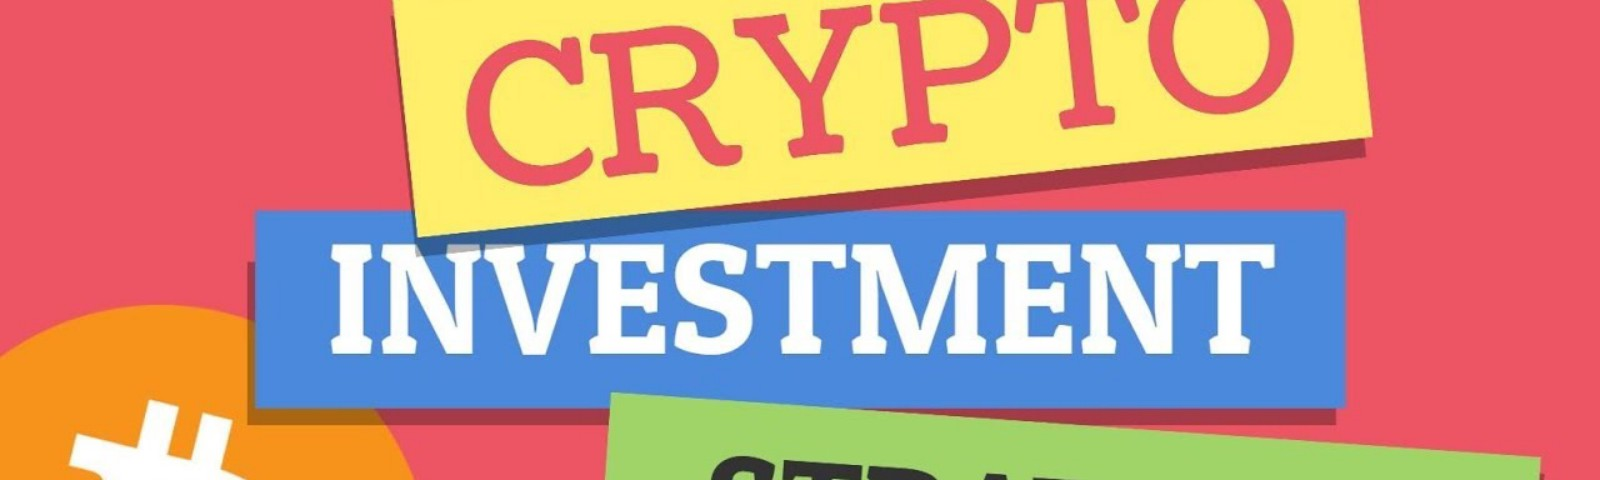 investment strategies for cryptocurrency